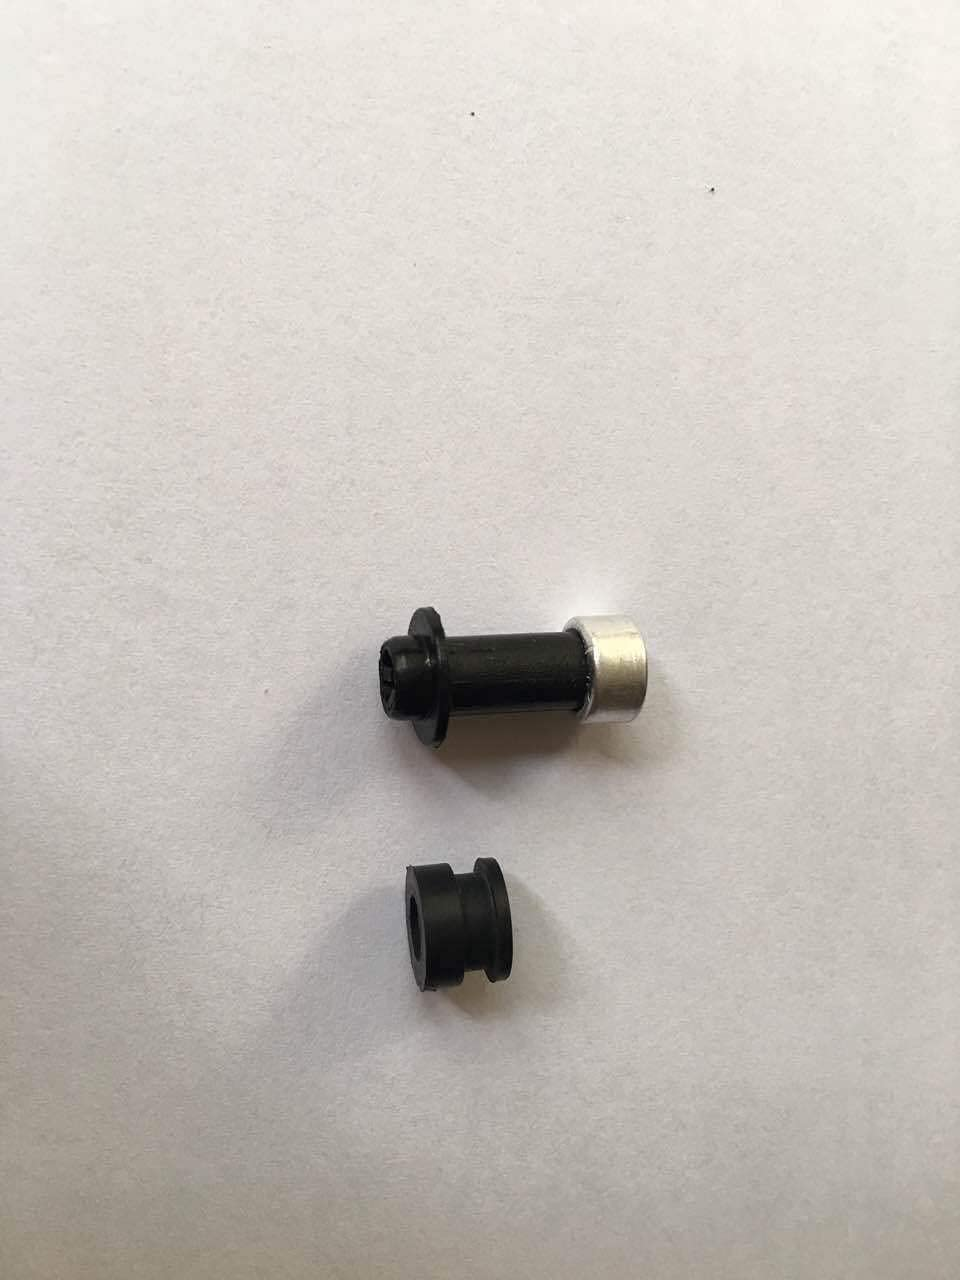 Replacement Parts Accessories for Printer 3SET Q1253-60041 C6095-60186 Compatible with HP 1050 5000 5100 5500 Z6100 Nozzle Connection Tube